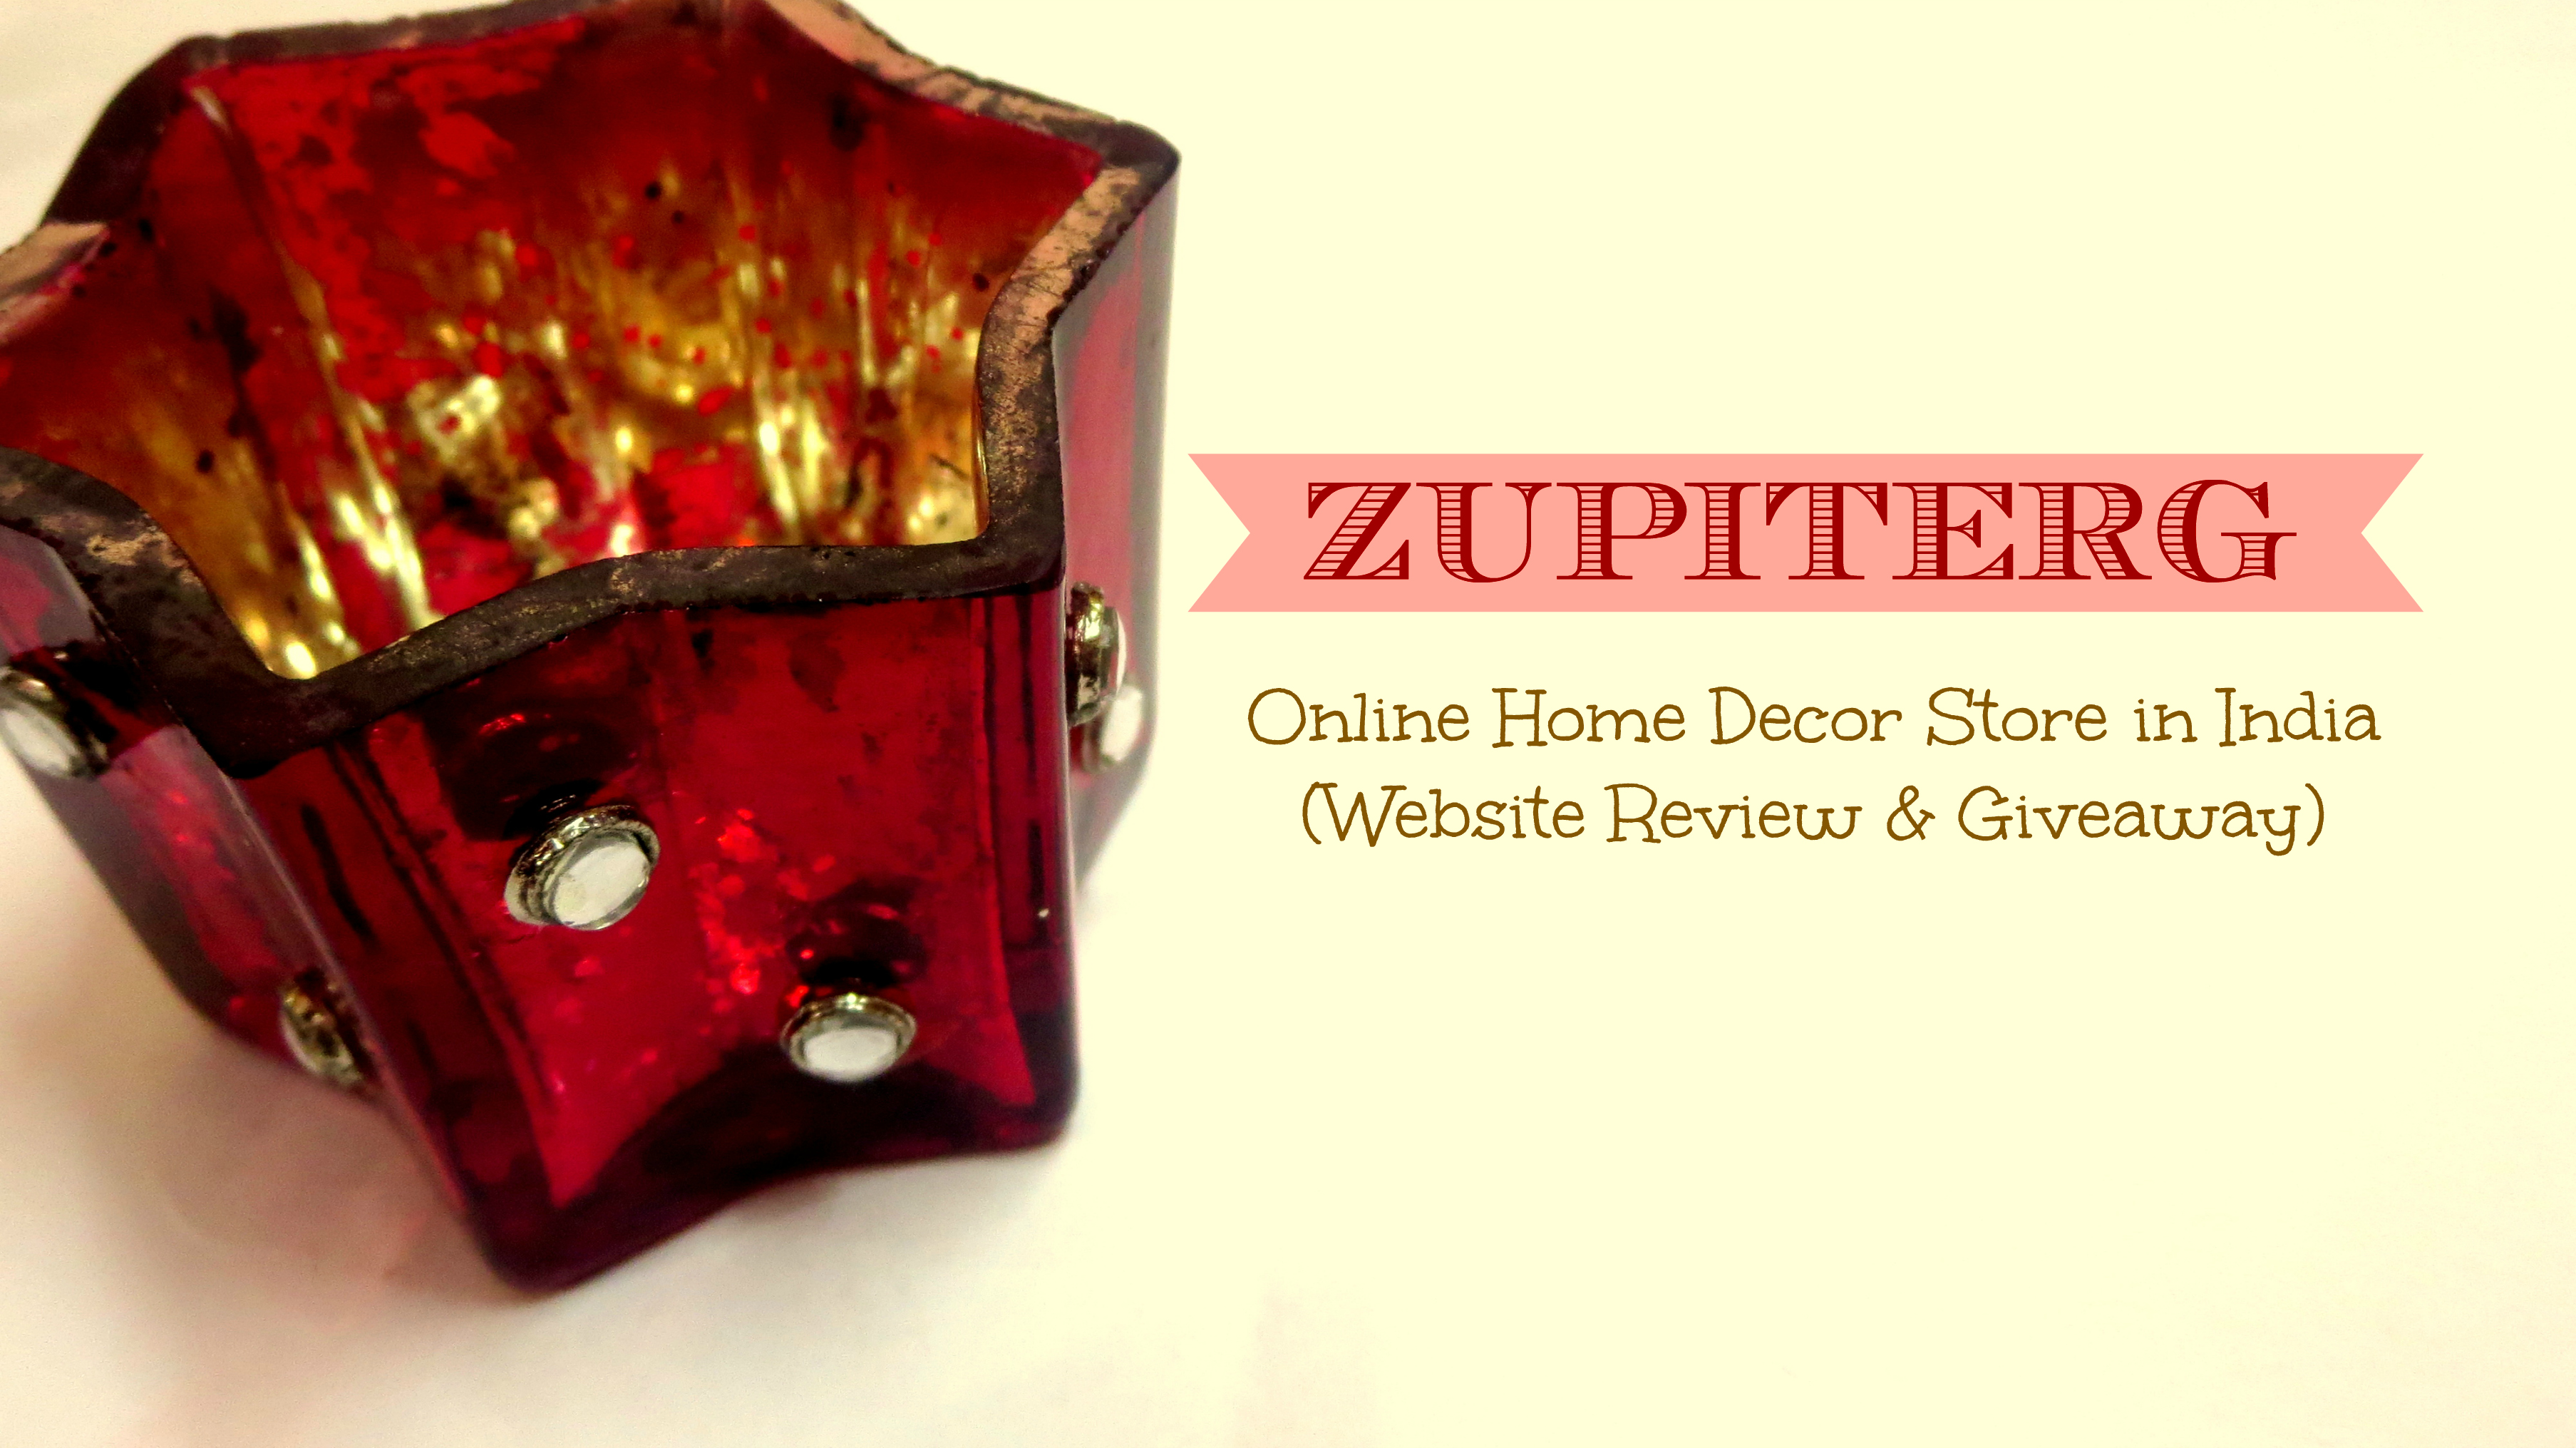 Zupiterg online home decor store 10 for House accessories online